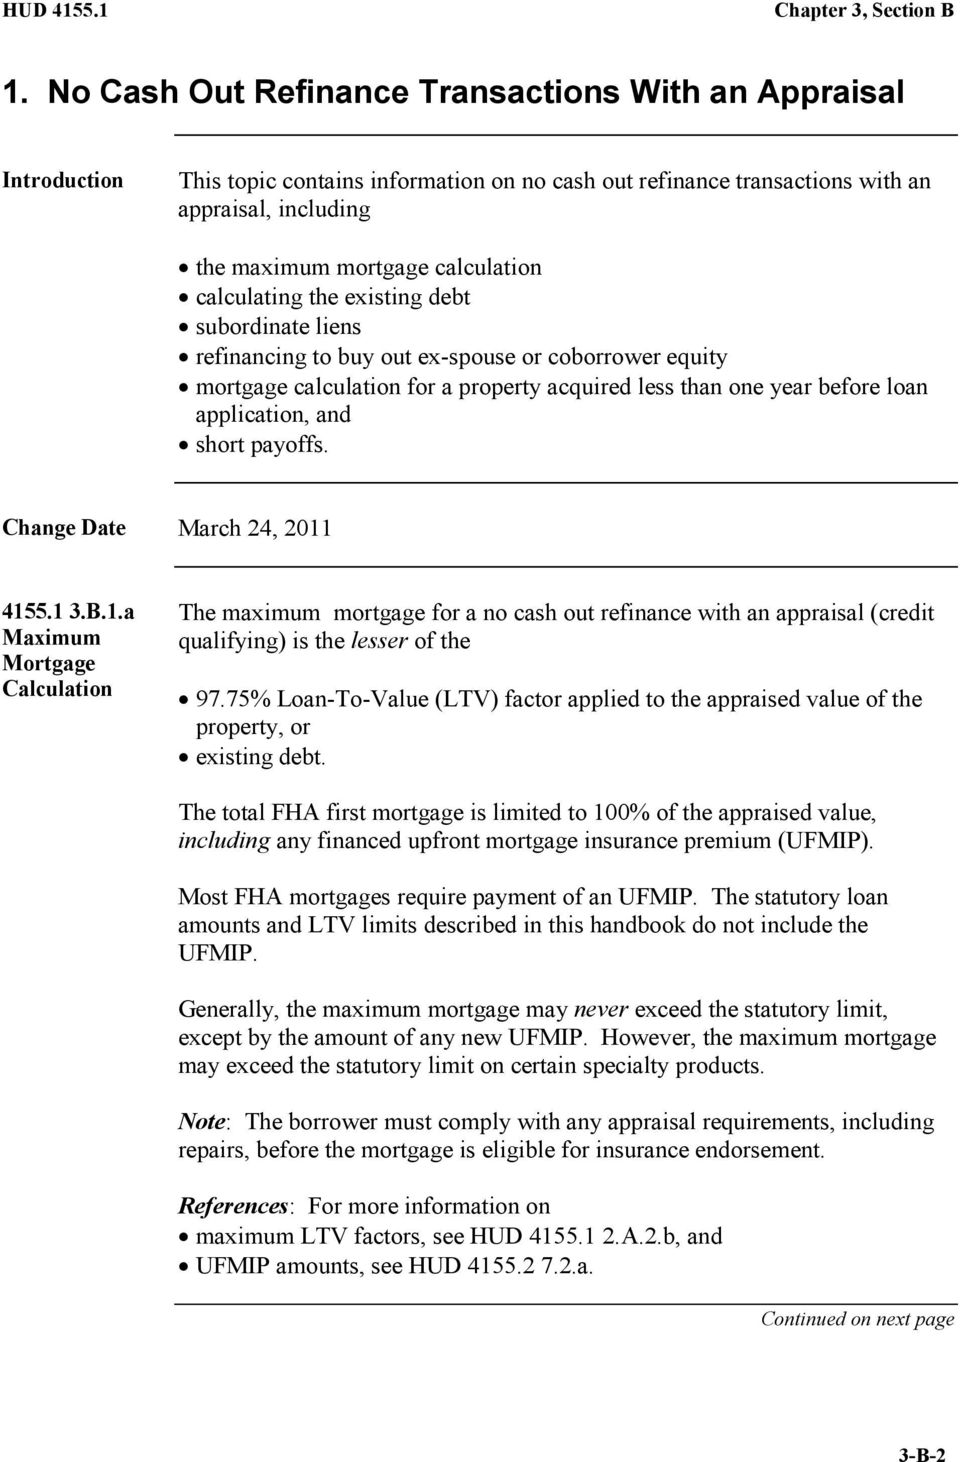 application, and short payoffs. Change Date March 24, 2011 4155.1 3.B.1.a Maximum Mortgage Calculation The maximum mortgage for a no cash out refinance with an appraisal (credit qualifying) is the lesser of the 97.